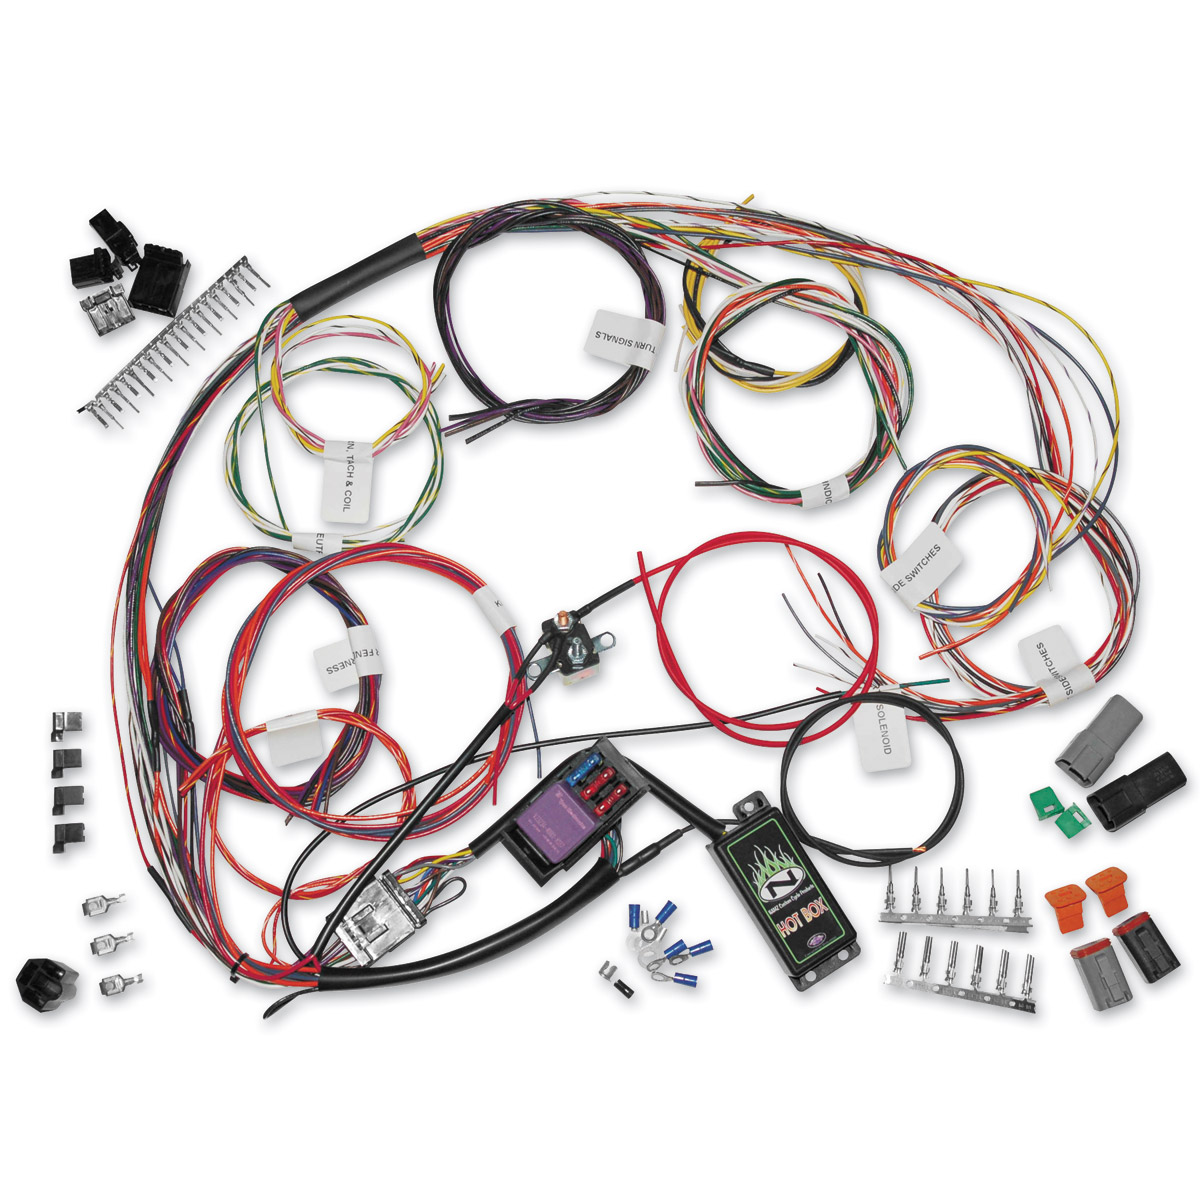 745 072_A namz custom cycle complete bike wiring harness kit 745 072 j&p custom wiring harness at bayanpartner.co